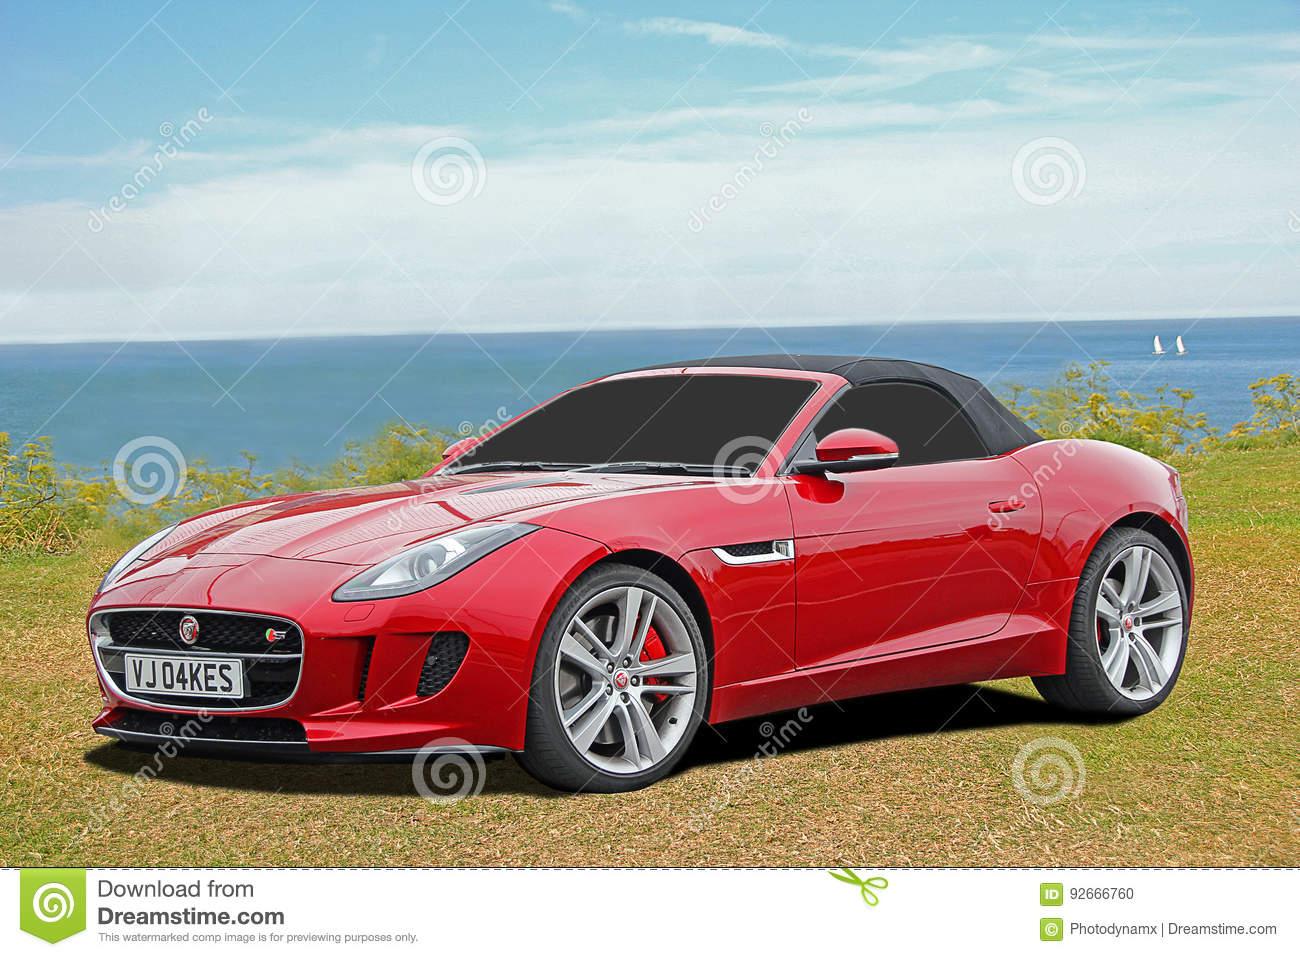 Luxury F Type Jaguar Sports Car Editorial Image Image Of Rich Life 92666760